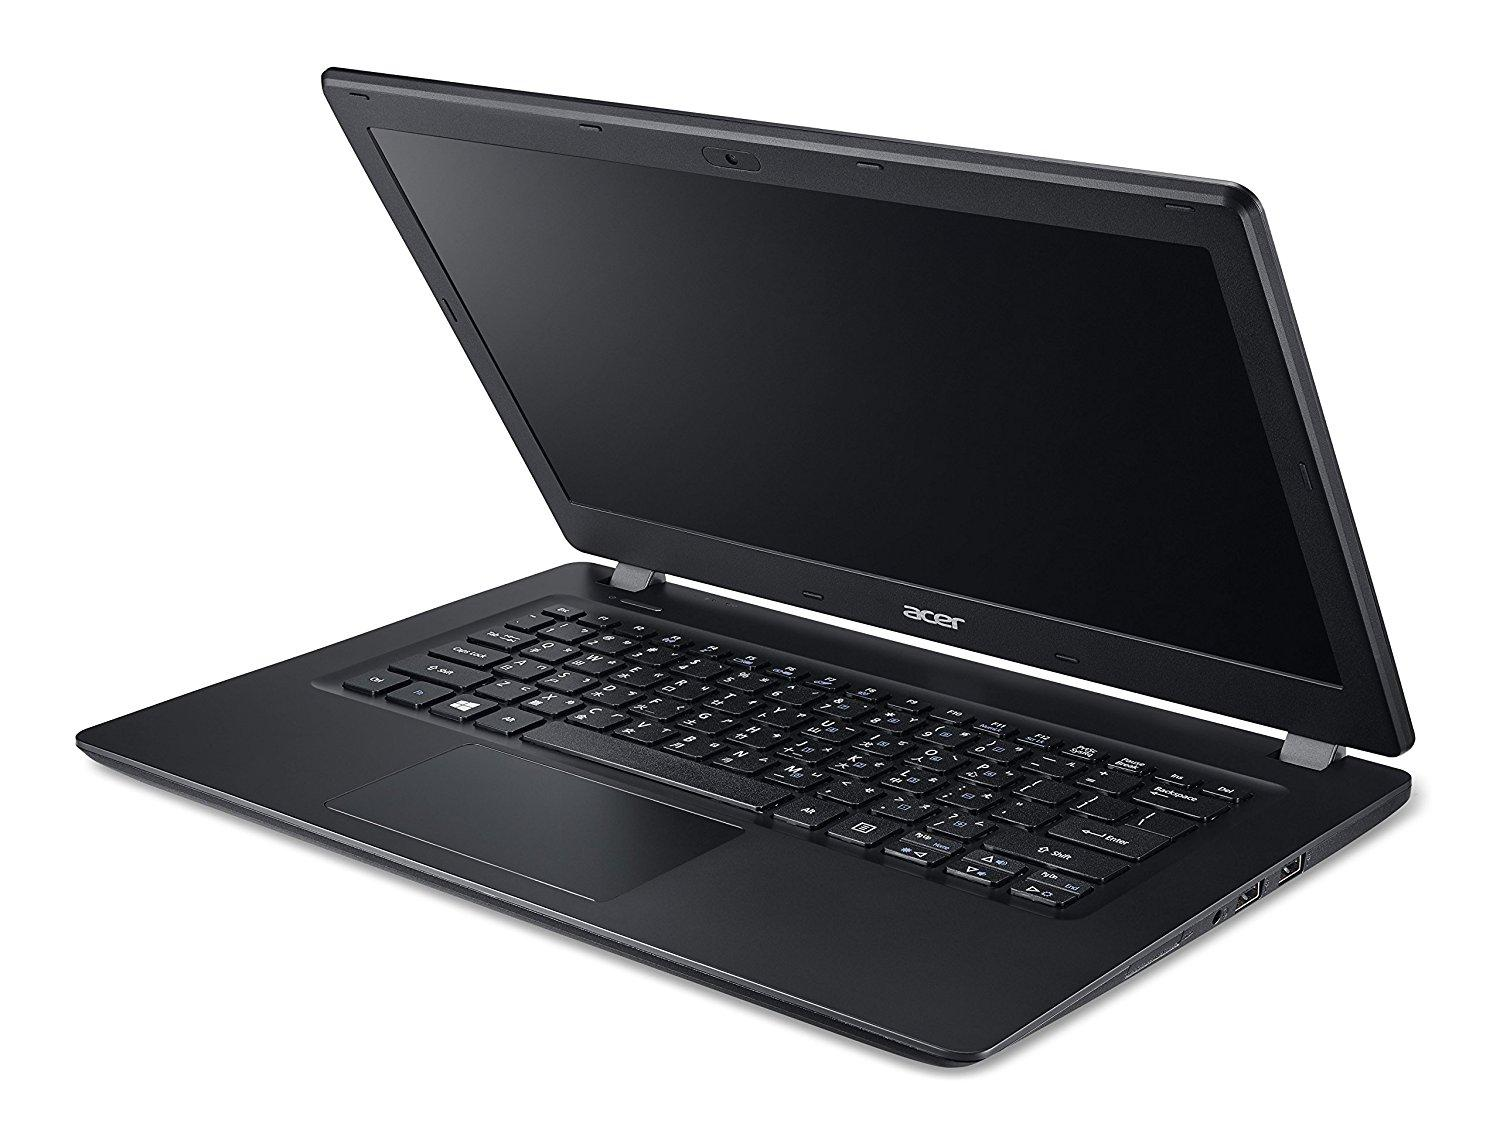 Acer Philippines Laptop For Sale Prices Reviews Lazada E5 475g Notebook Grey I5 7200u 4gb Ddr4 Gt940mx 2gb Ddr5 1tb Hdd Dos